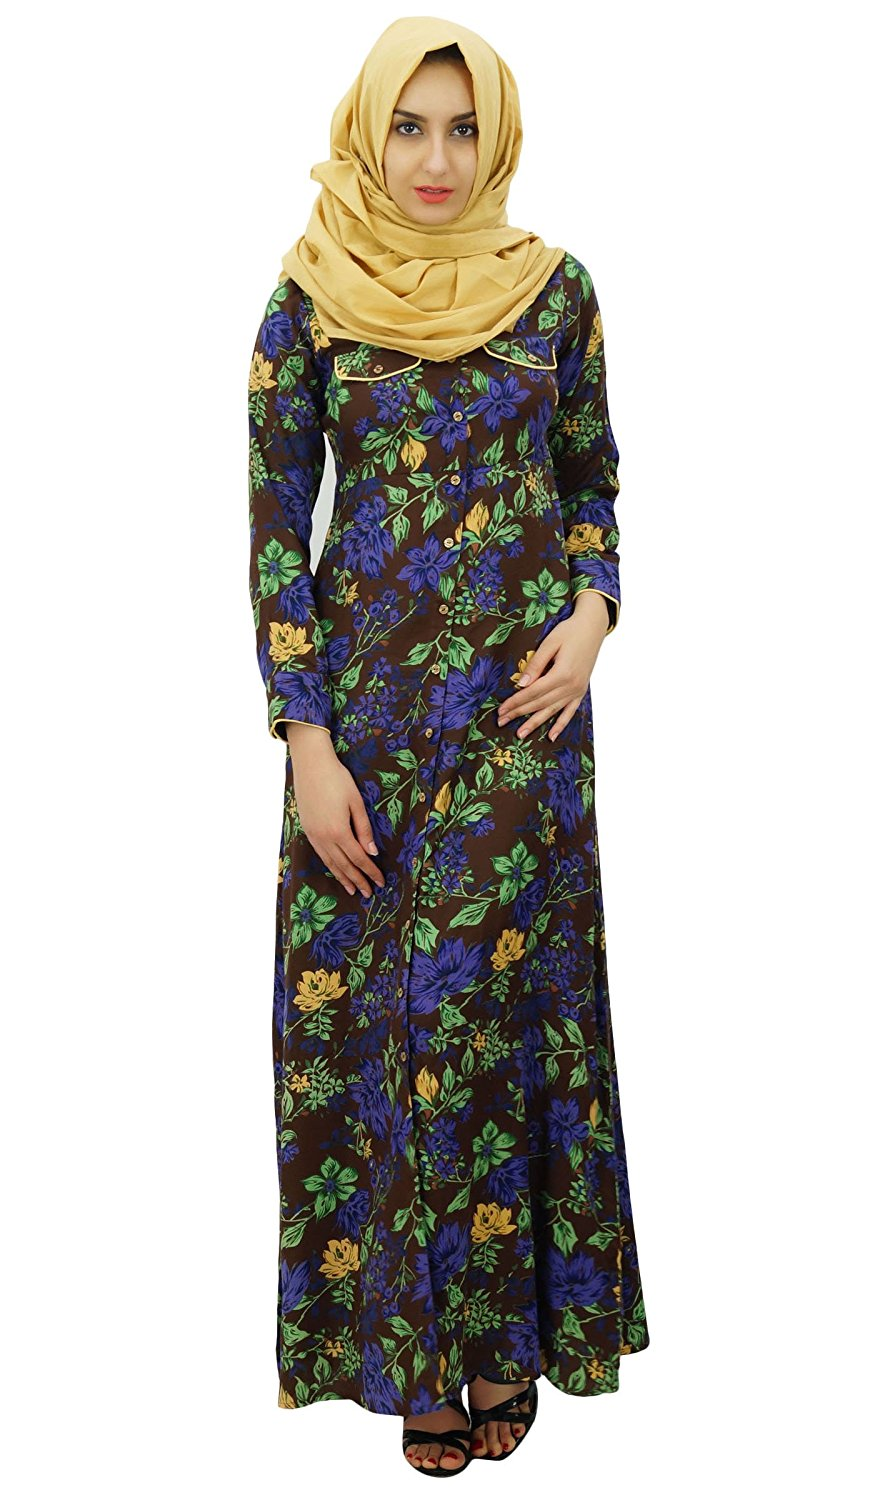 267ed7a3350 Get Quotations · Bimba Womens Muslim Printed Jilbab Dress Designer Pashmina Maxi  Abaya With Pockets   Hijab